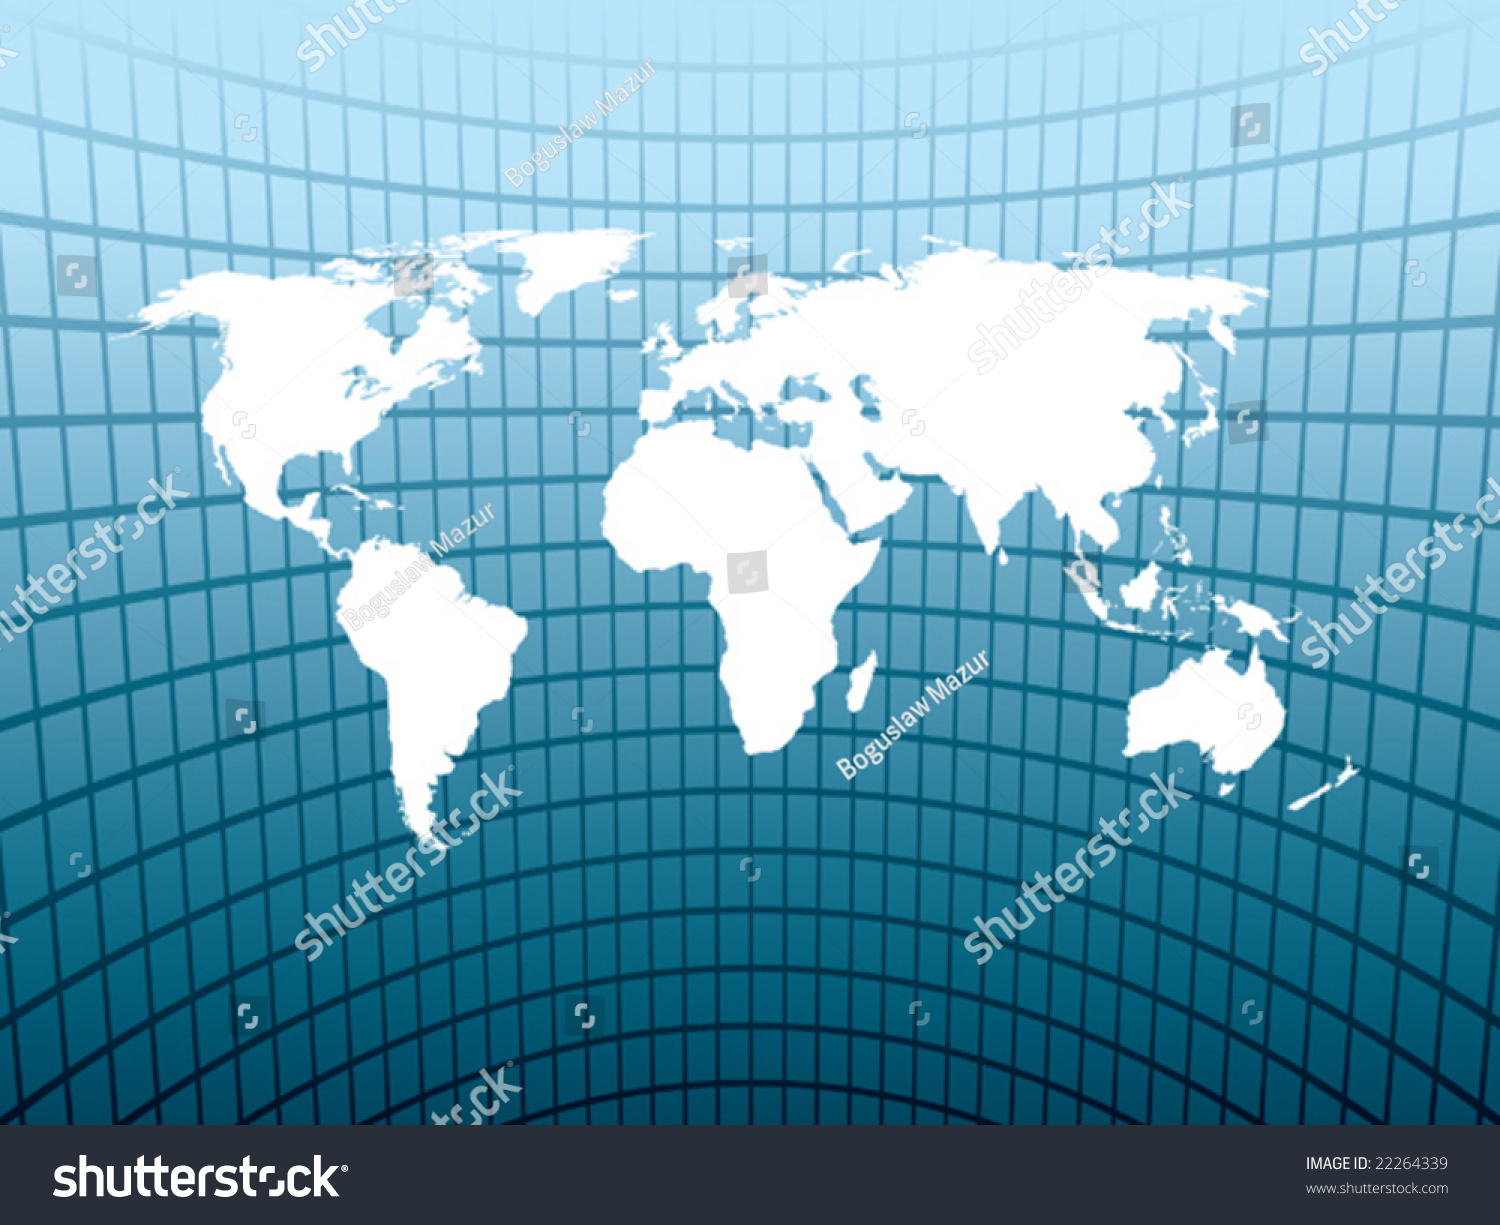 Large World Map On Abstract Blue Stock Vector Shutterstock - Large map of earth